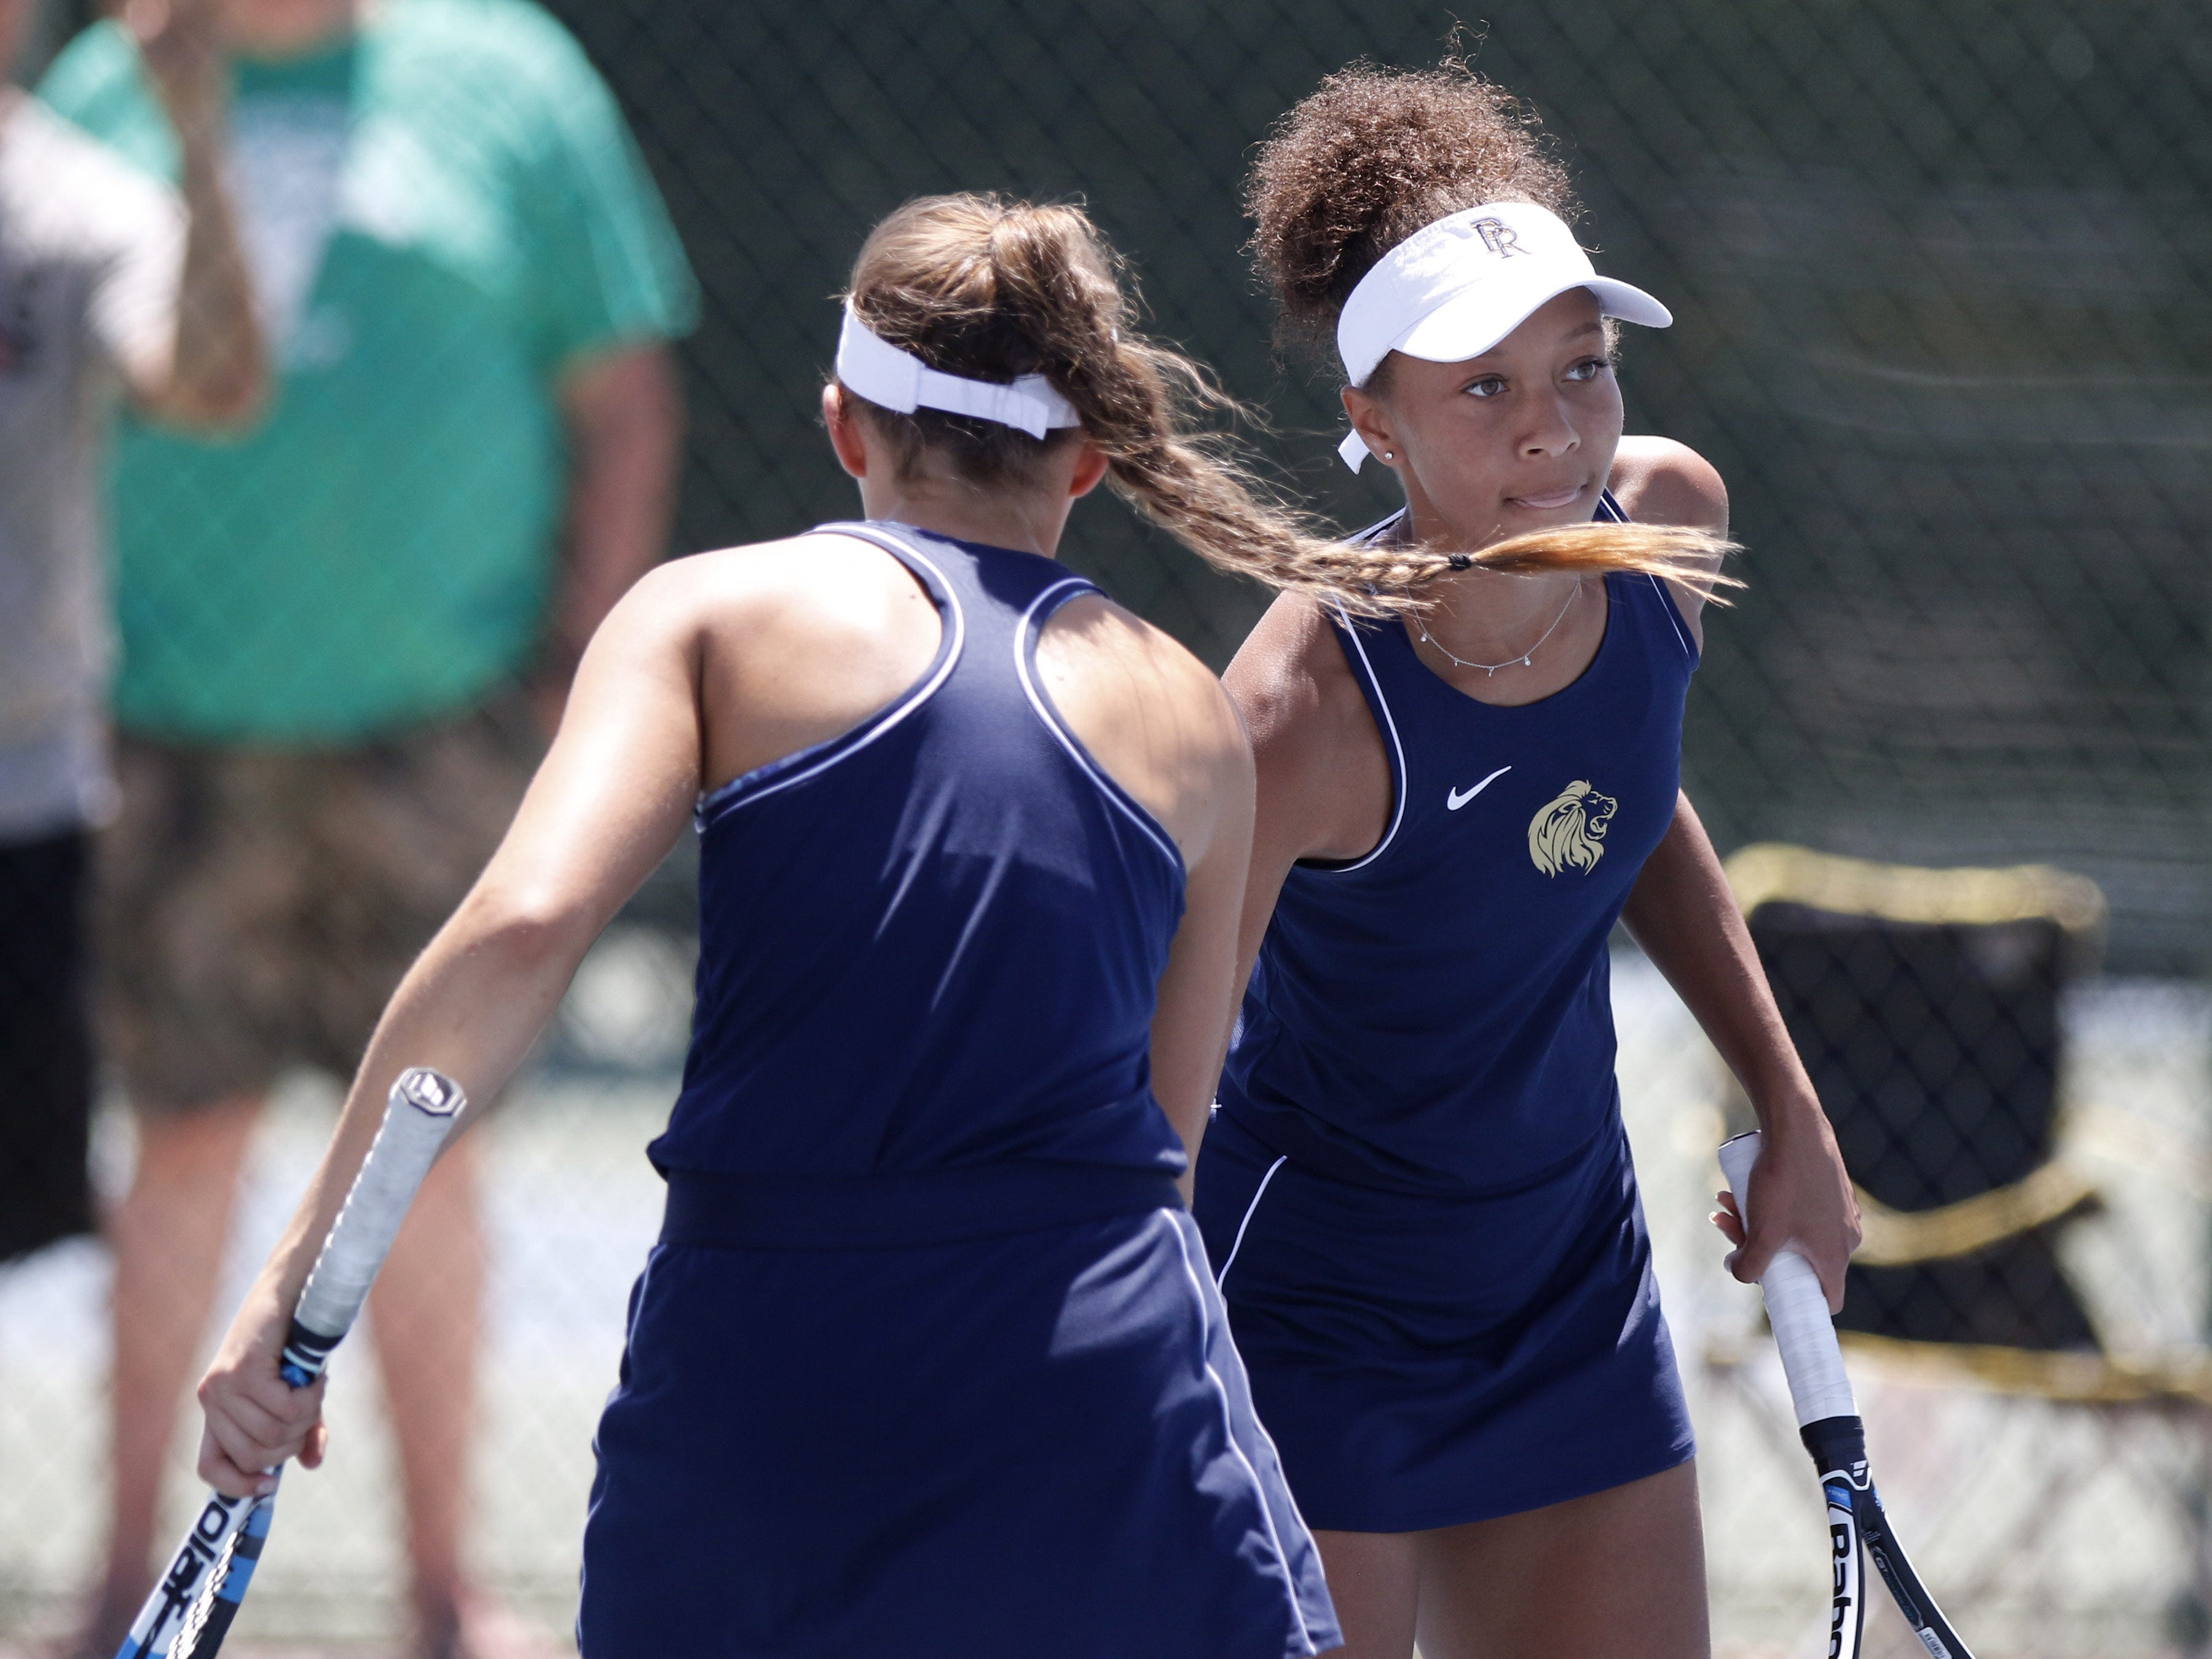 Pusch Ridge's Regan Harris and Sofia Fetsis low-five each other after winning a point against Thatcher during the Division III tennis team state championship in Glendale, Arizona, May 04, 2019.